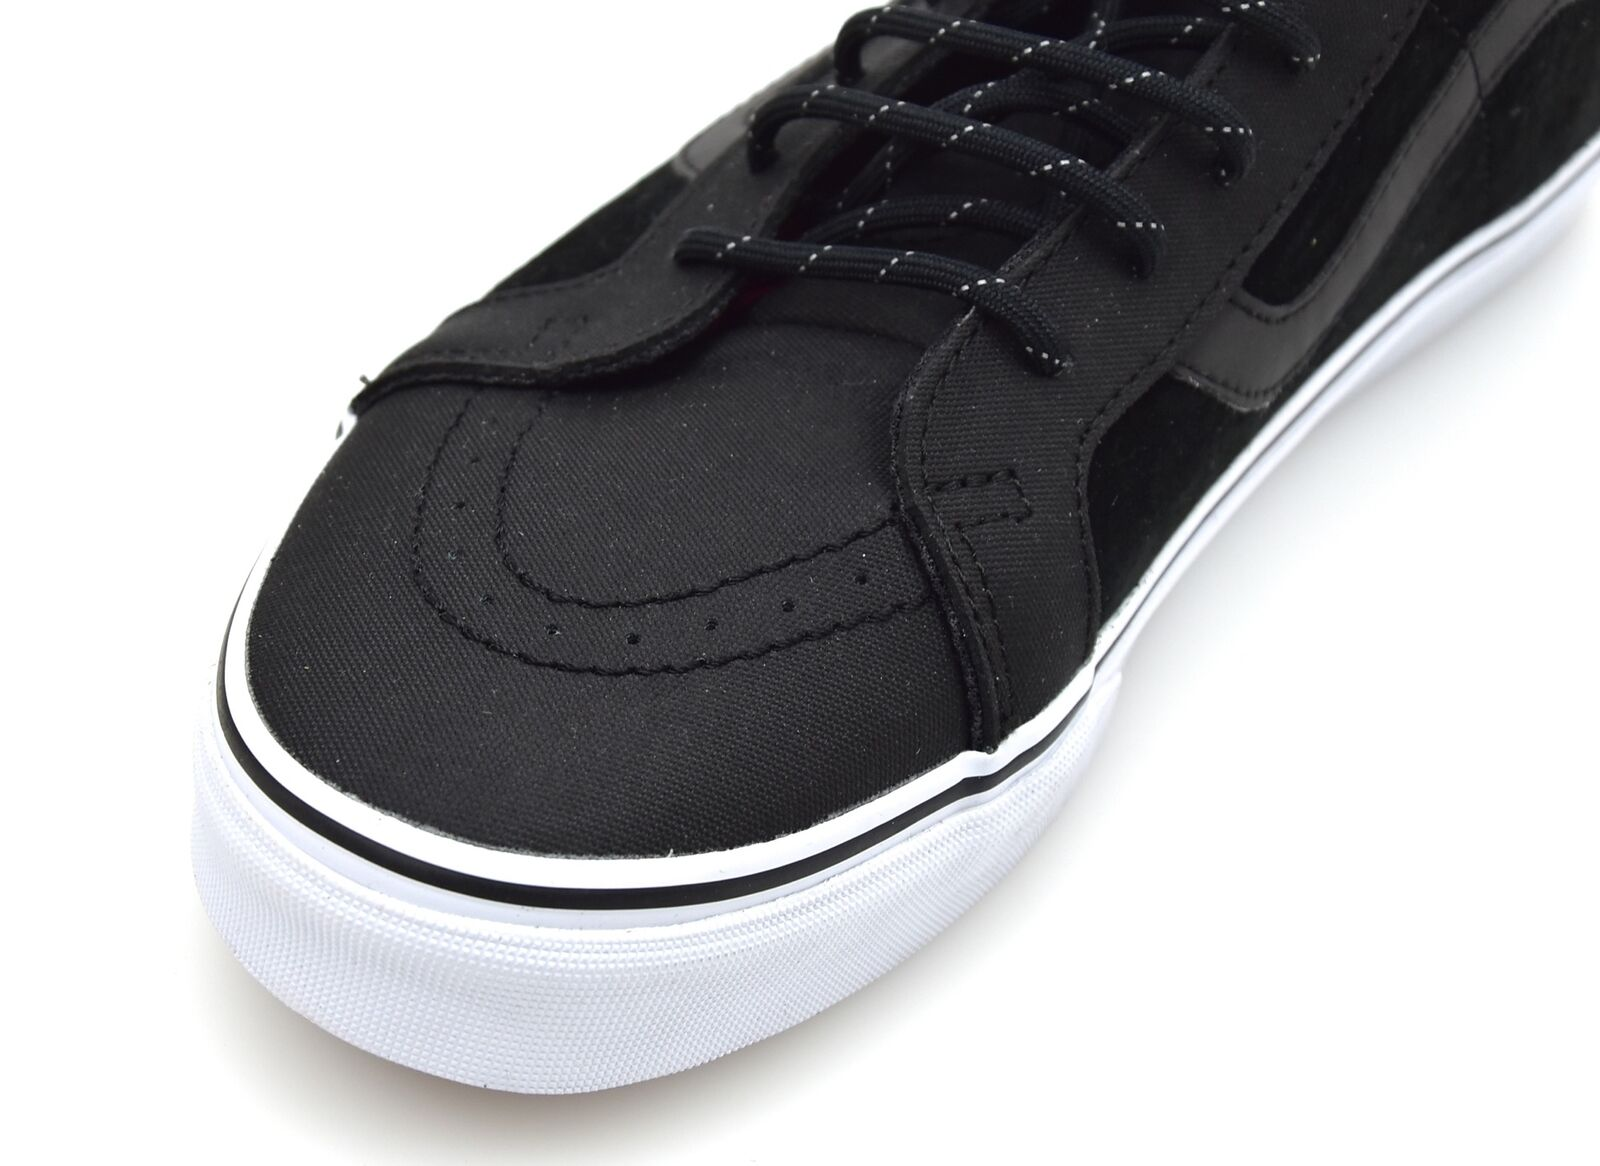 VANS MAN SNEAKER SHOES CASUAL FREE TIME TIME TIME CODE SK8-HI REISSUE DX VN0A2Z5ZK9B ebc05c